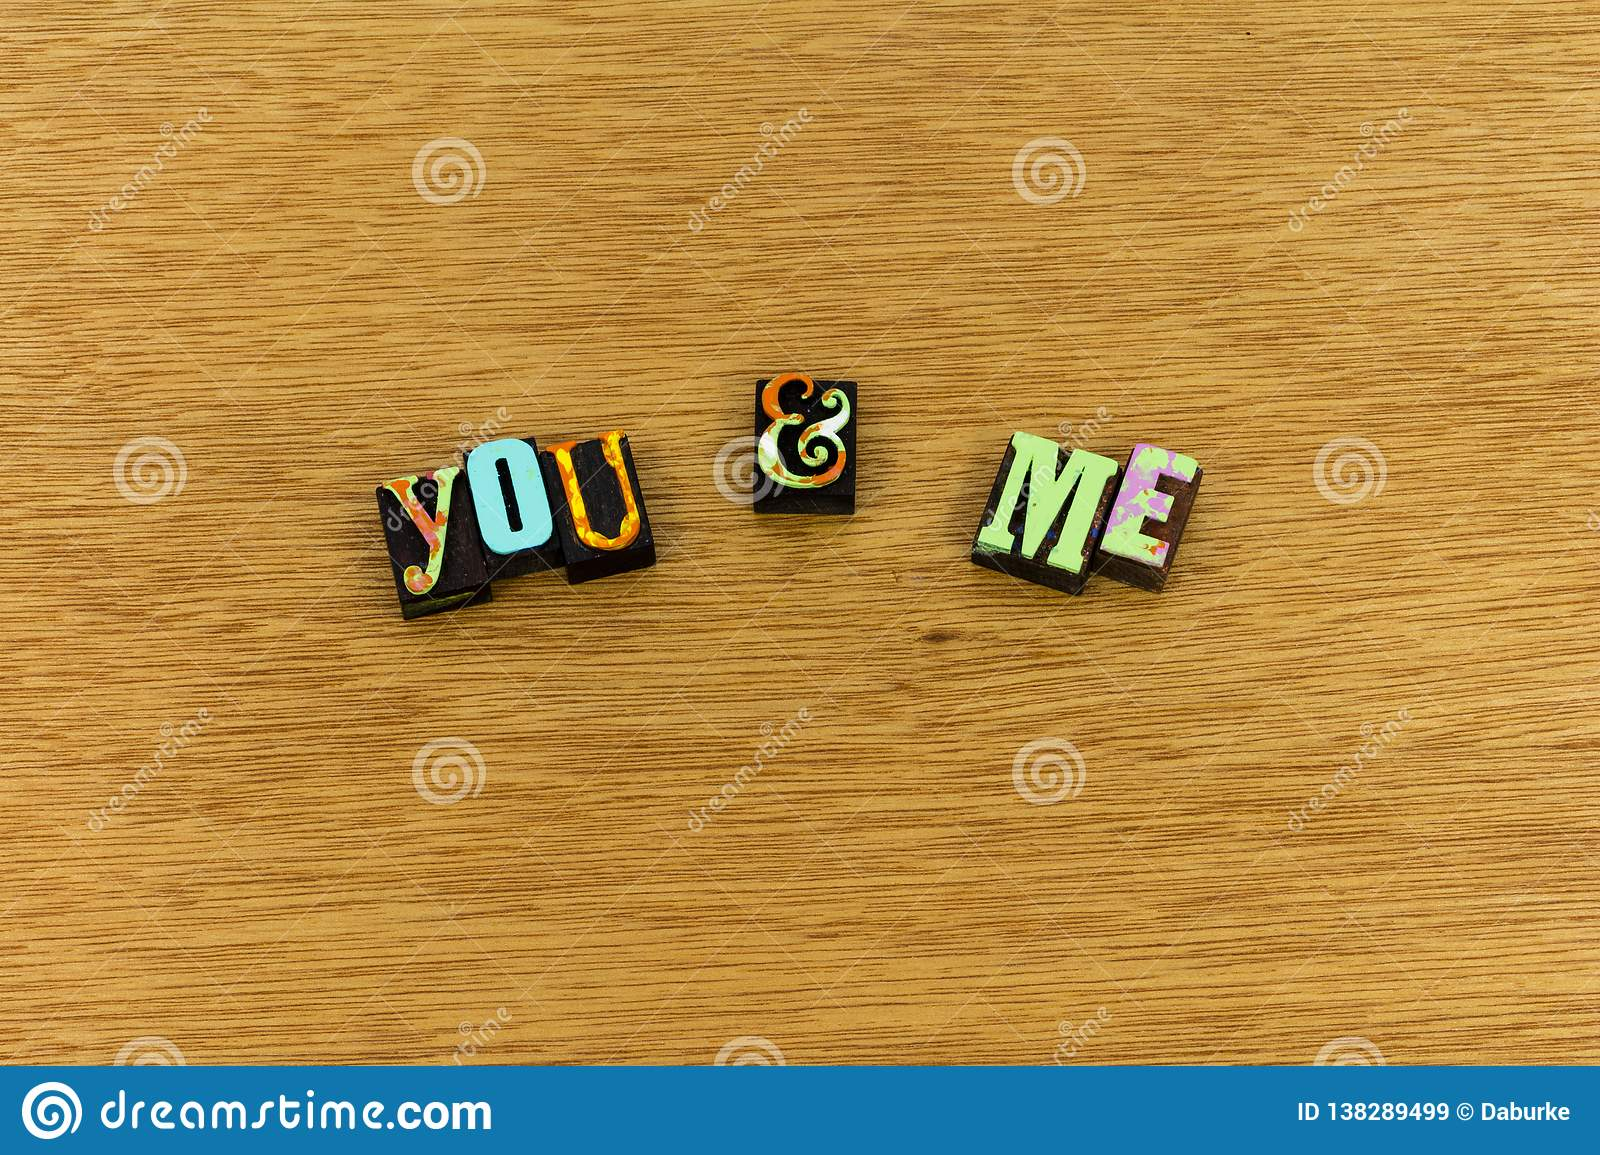 You Me Together Love Always Letterpress Stock Image - Image of sign